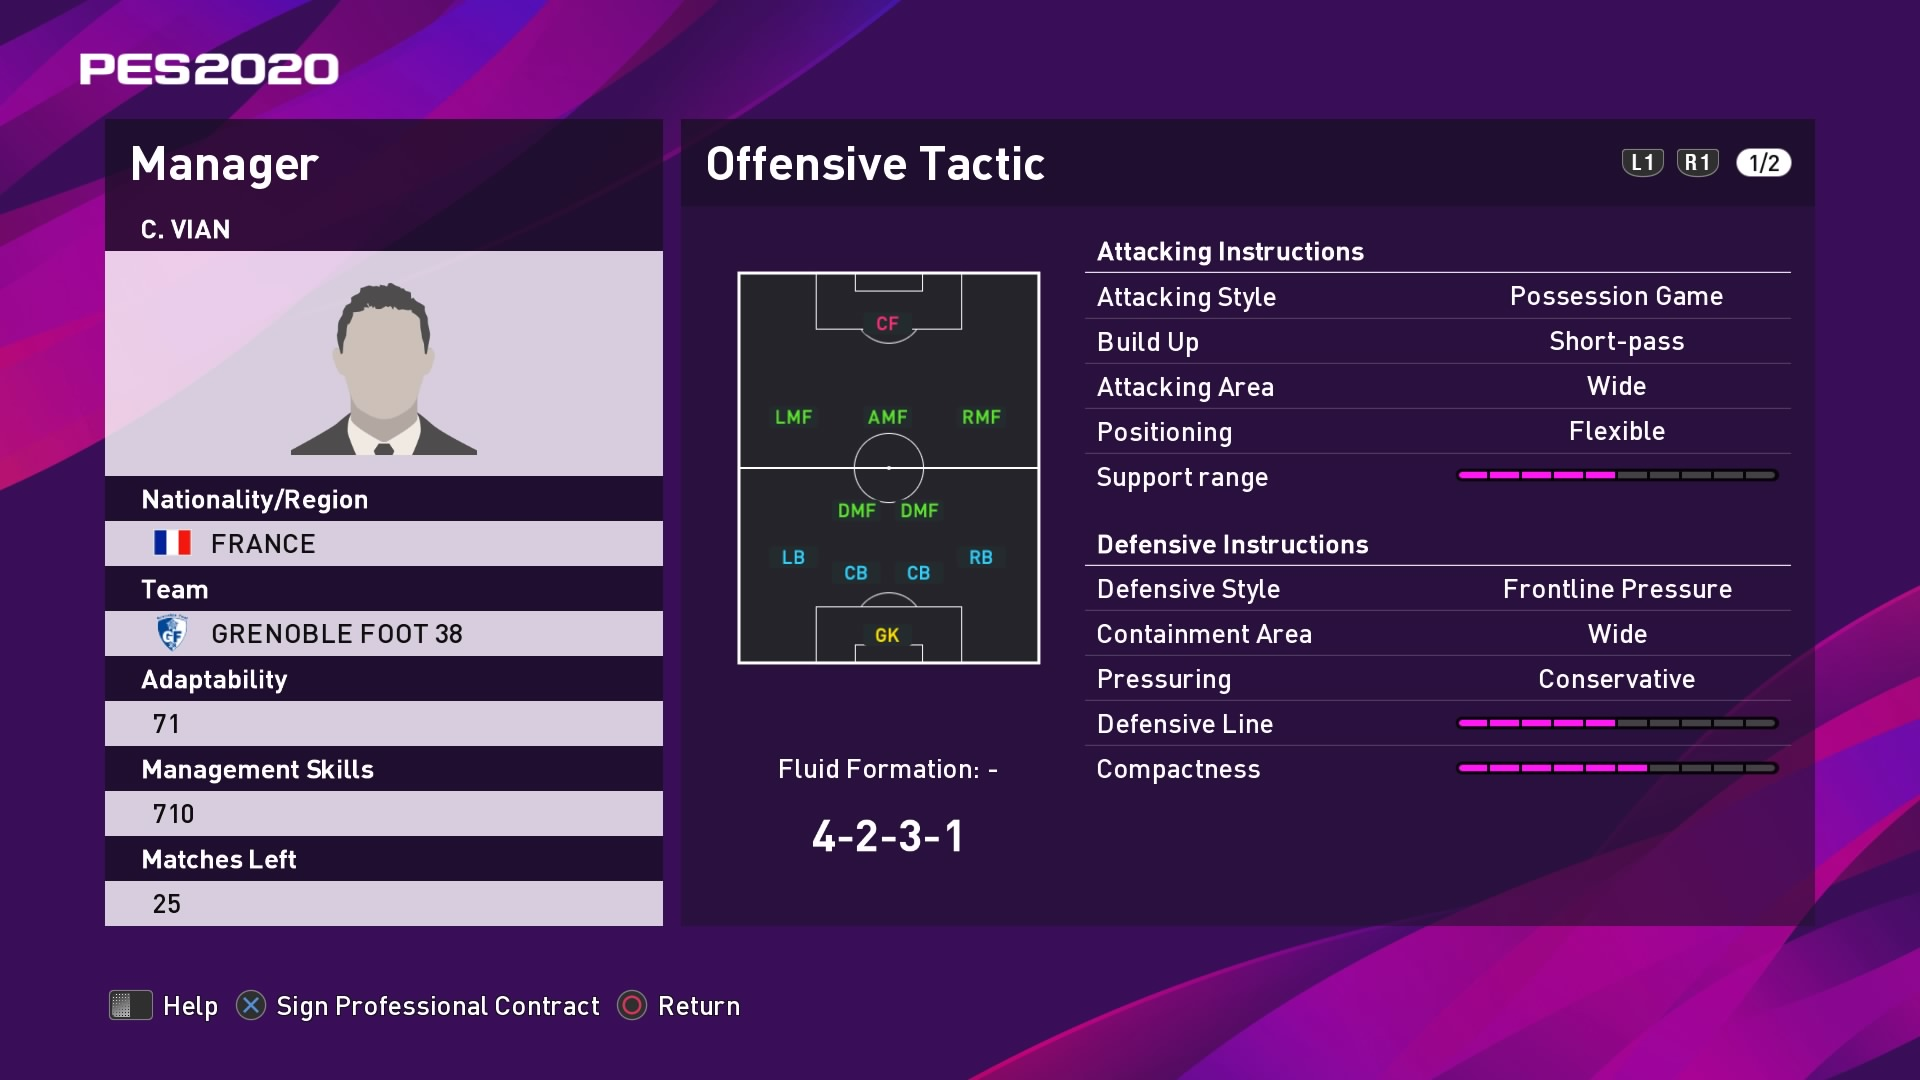 C. Vian (Philippe Hinschberger) Offensive Tactic in PES 2020 myClub